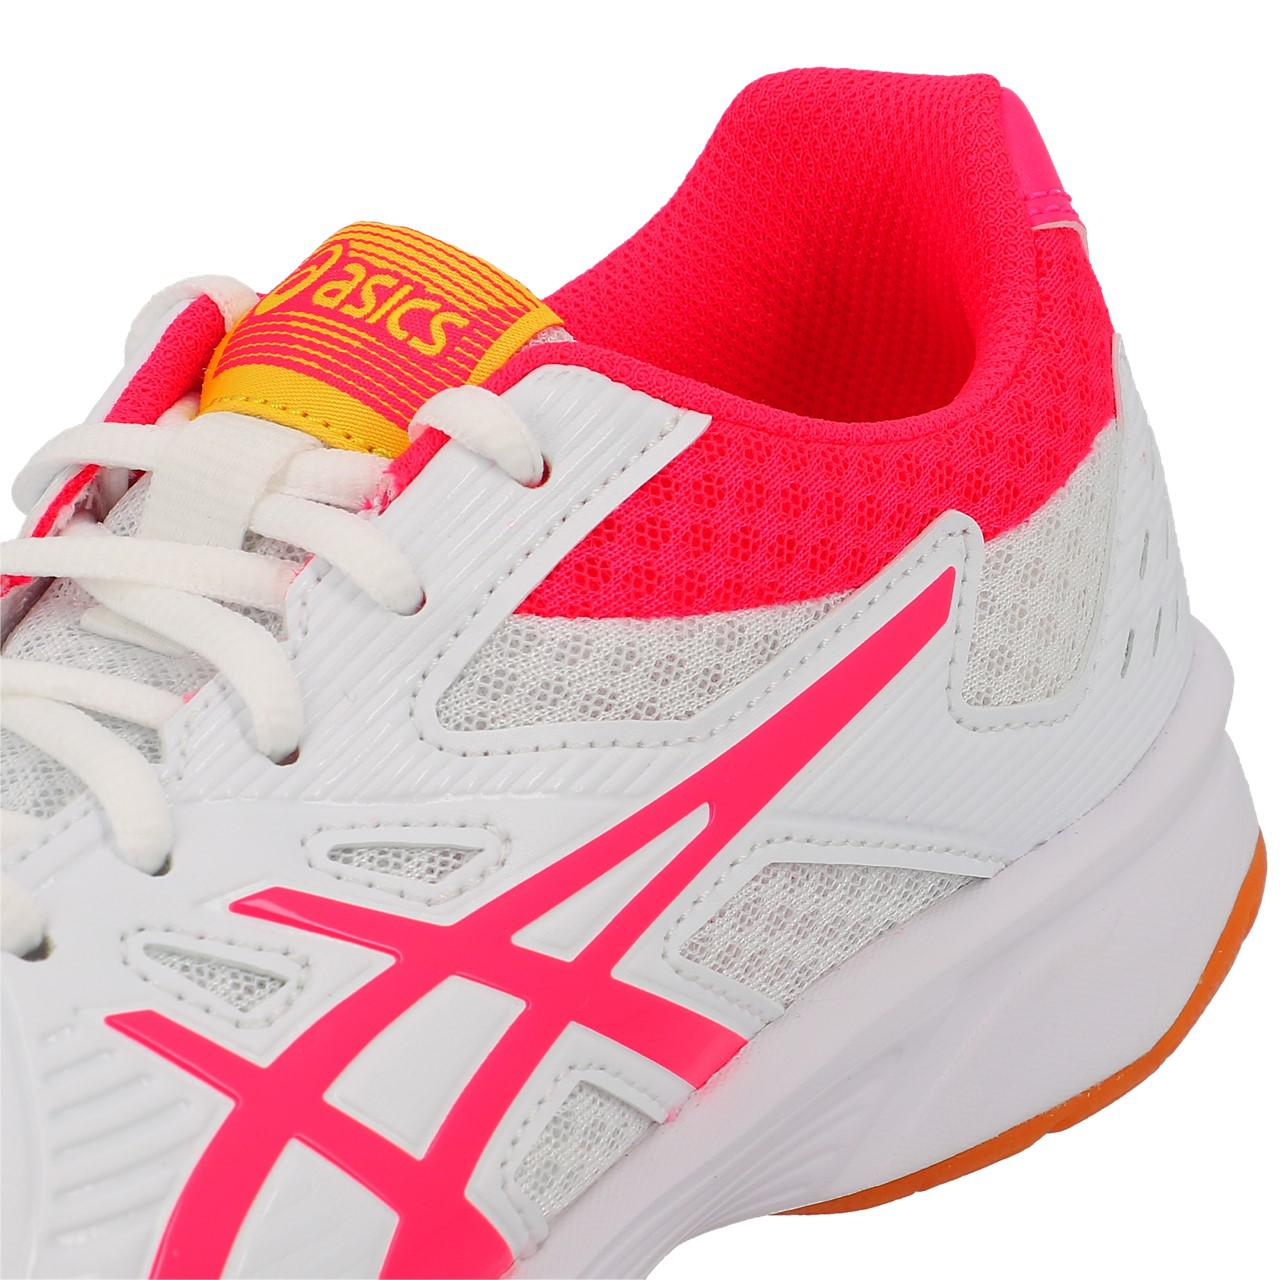 Shoes-Volleyball-Basketball-Asics-Upcourt-3-Wht-Indoor-G-White-19557-New thumbnail 2